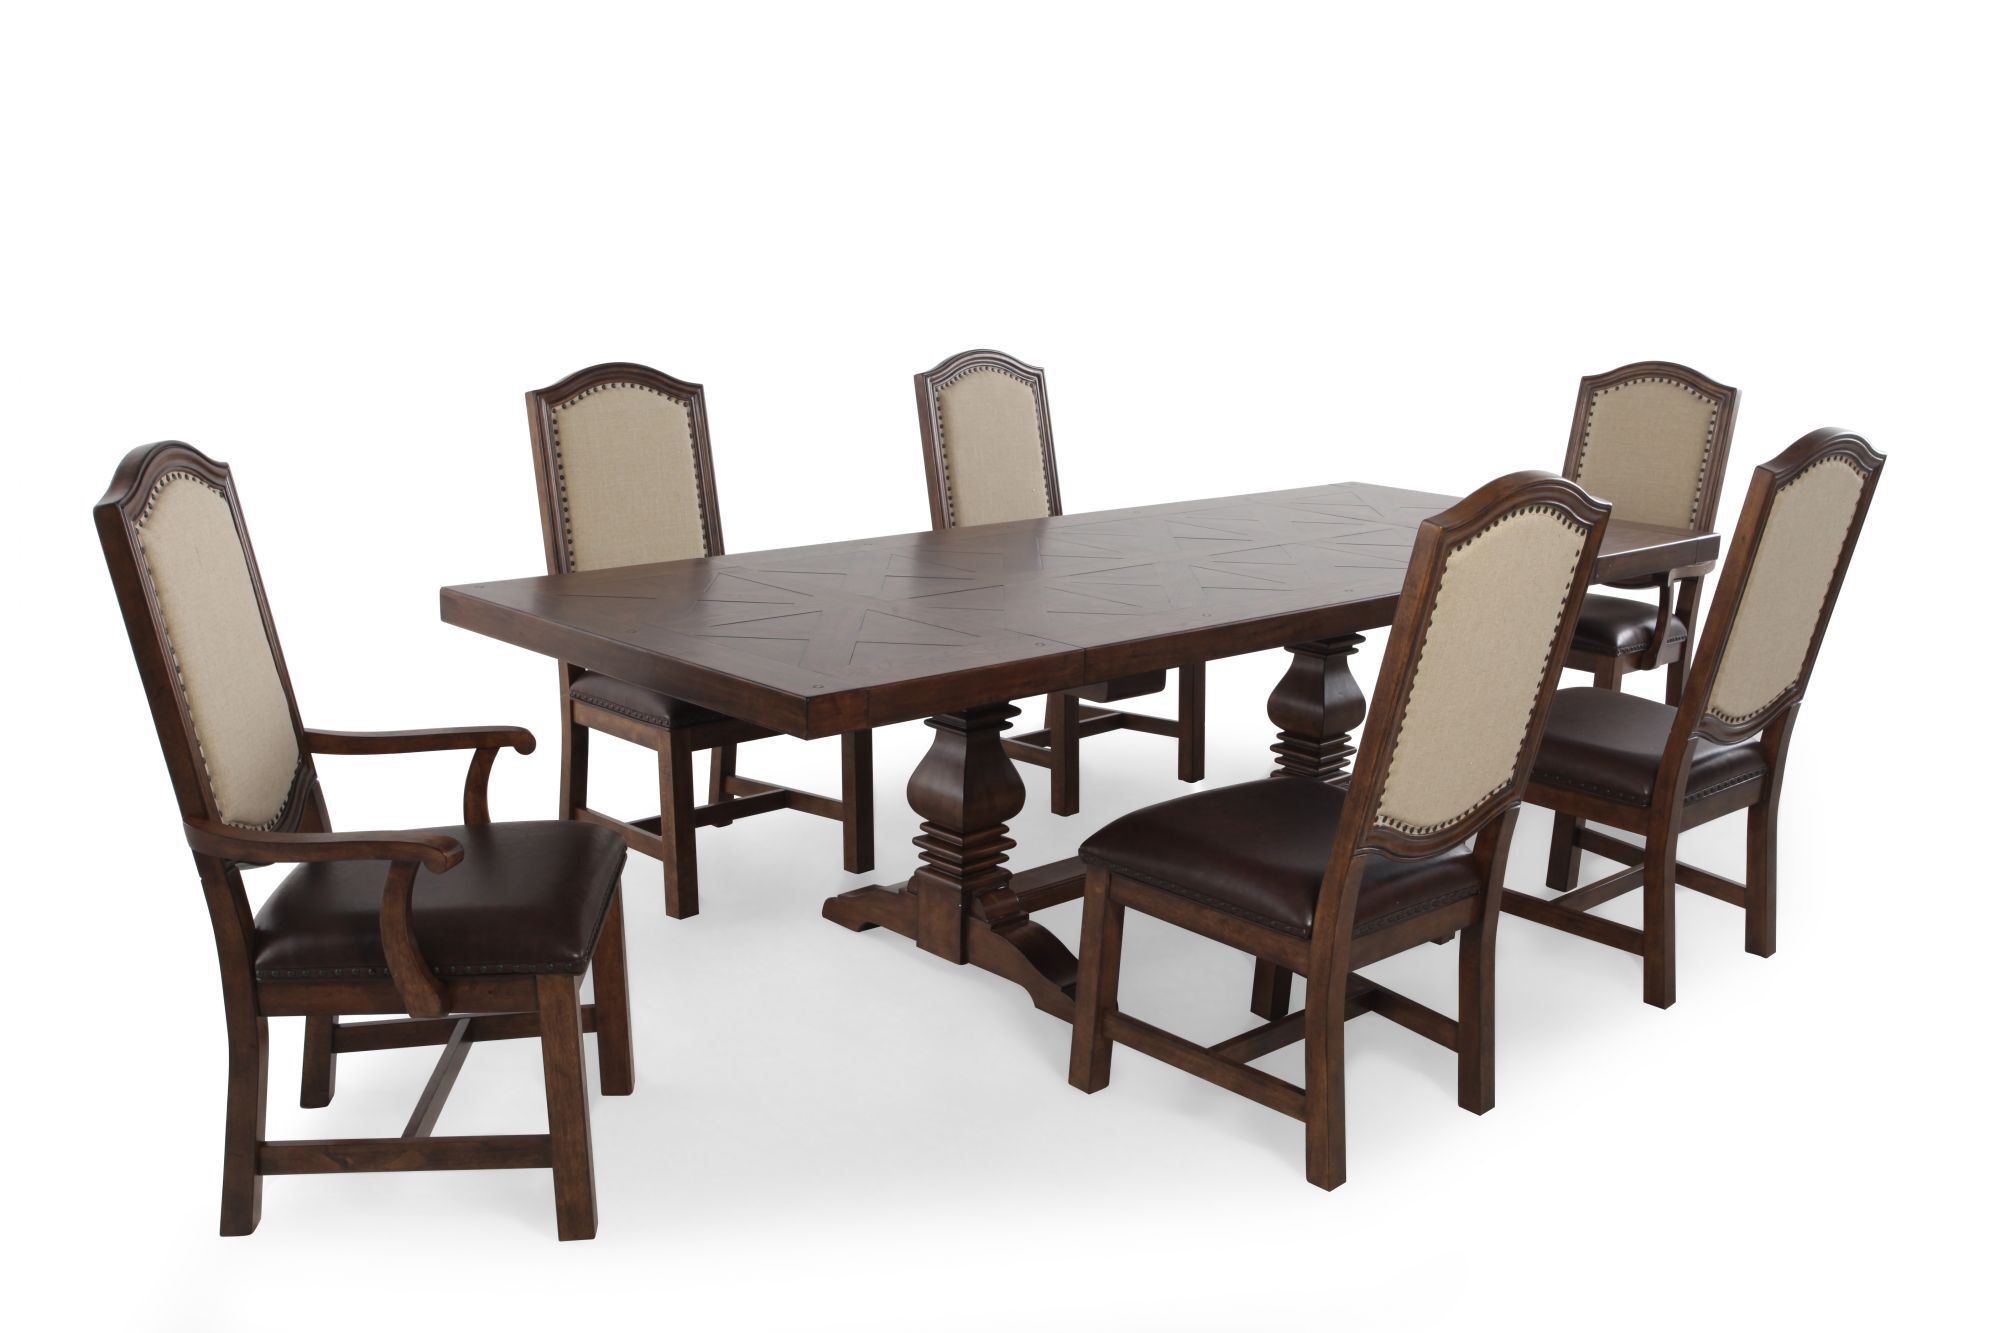 ... Samuel Lawrence American Attitude Seven Piece Dining Table